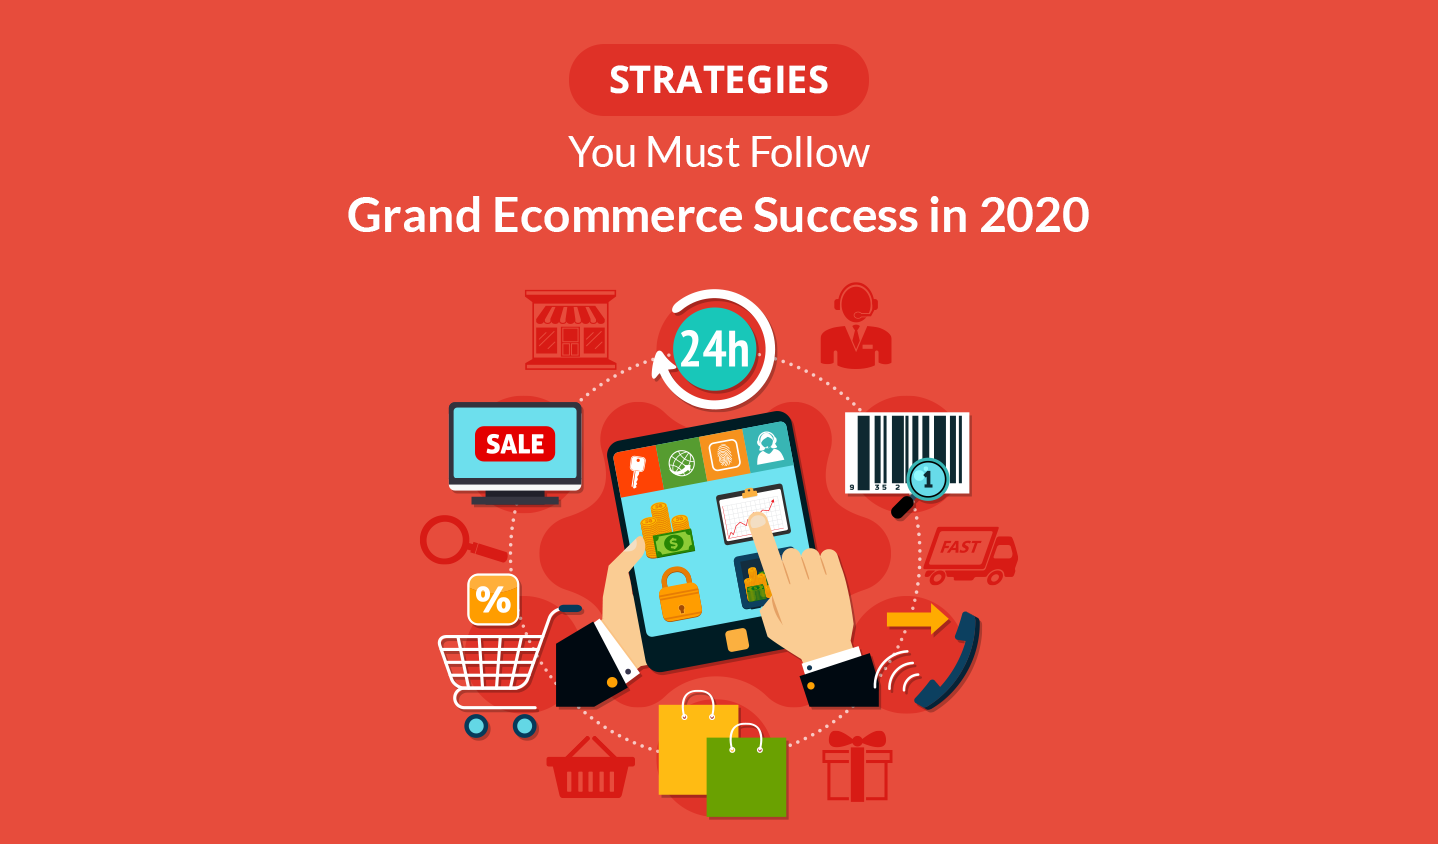 10 Strategies You Must Follow For Grand Ecommerce Success in 2020